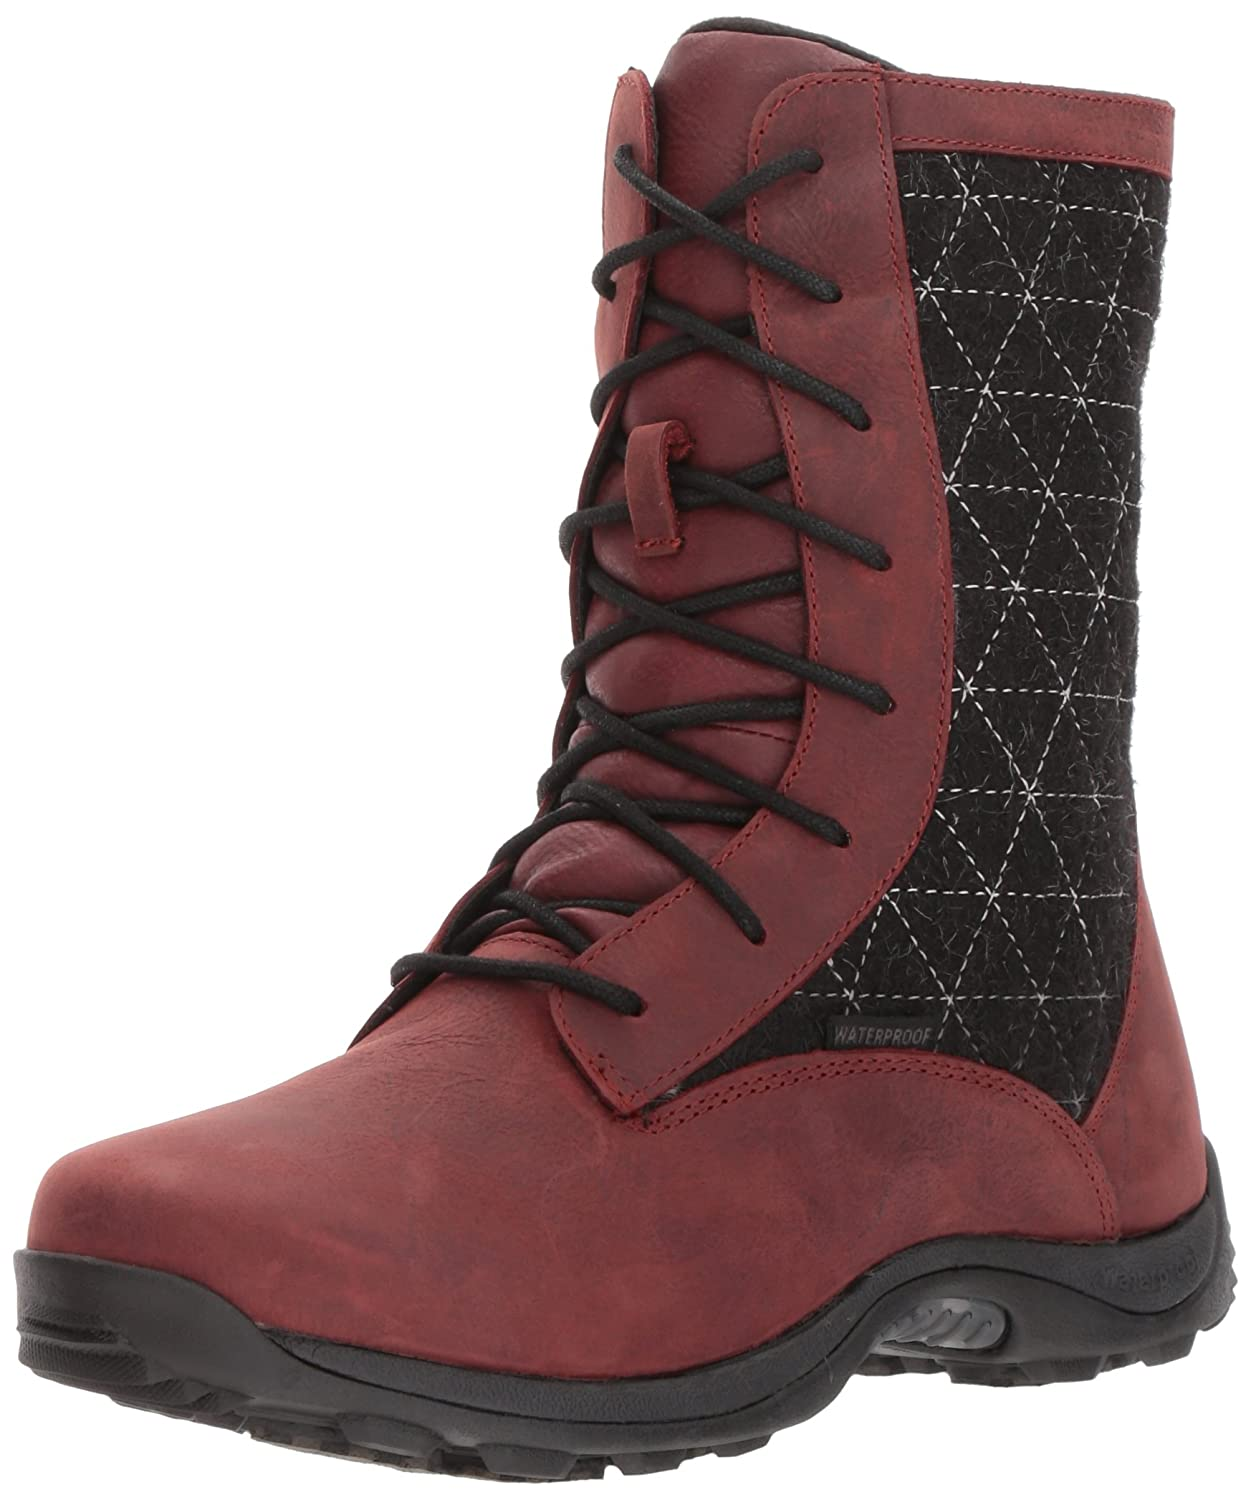 Baffin Womens Women's Alpine B01N6ZMUDP 6 B(M) US|Dark Red